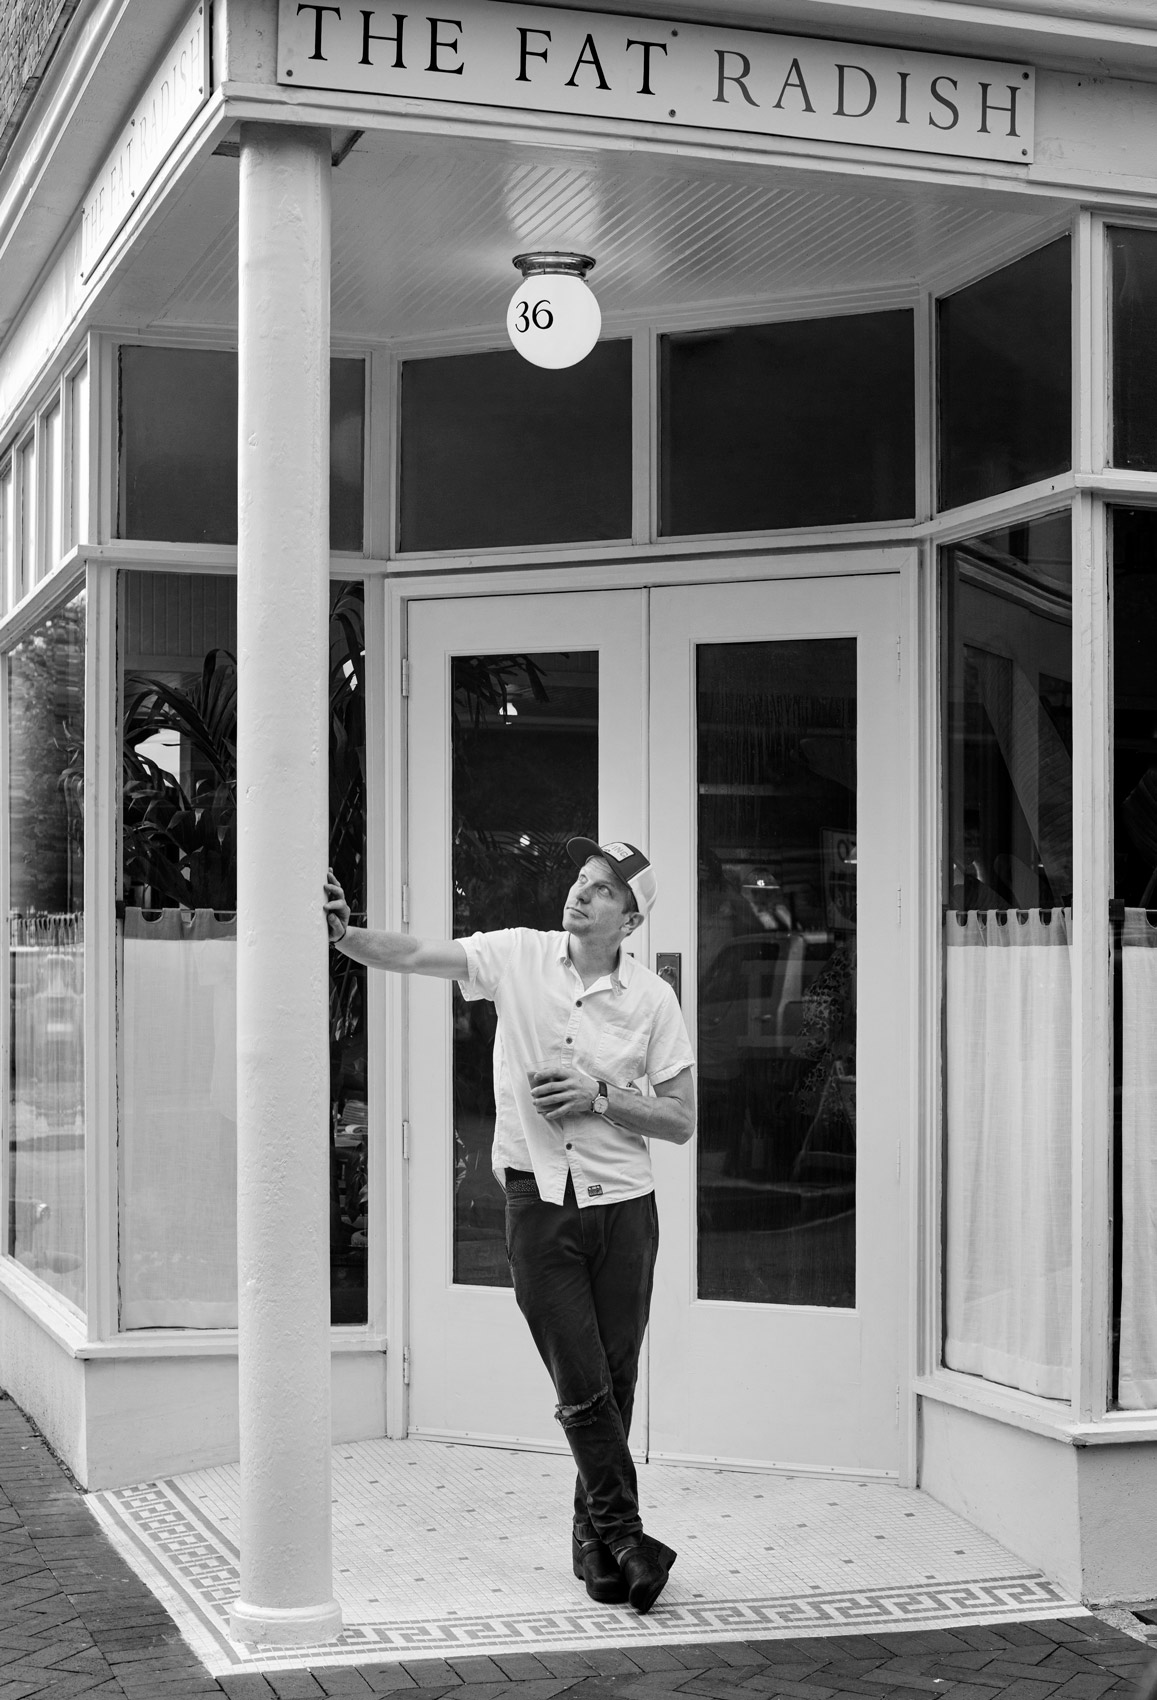 Chef Nick Wilbur Black and White Photography outside The Fat Radish in Savannah